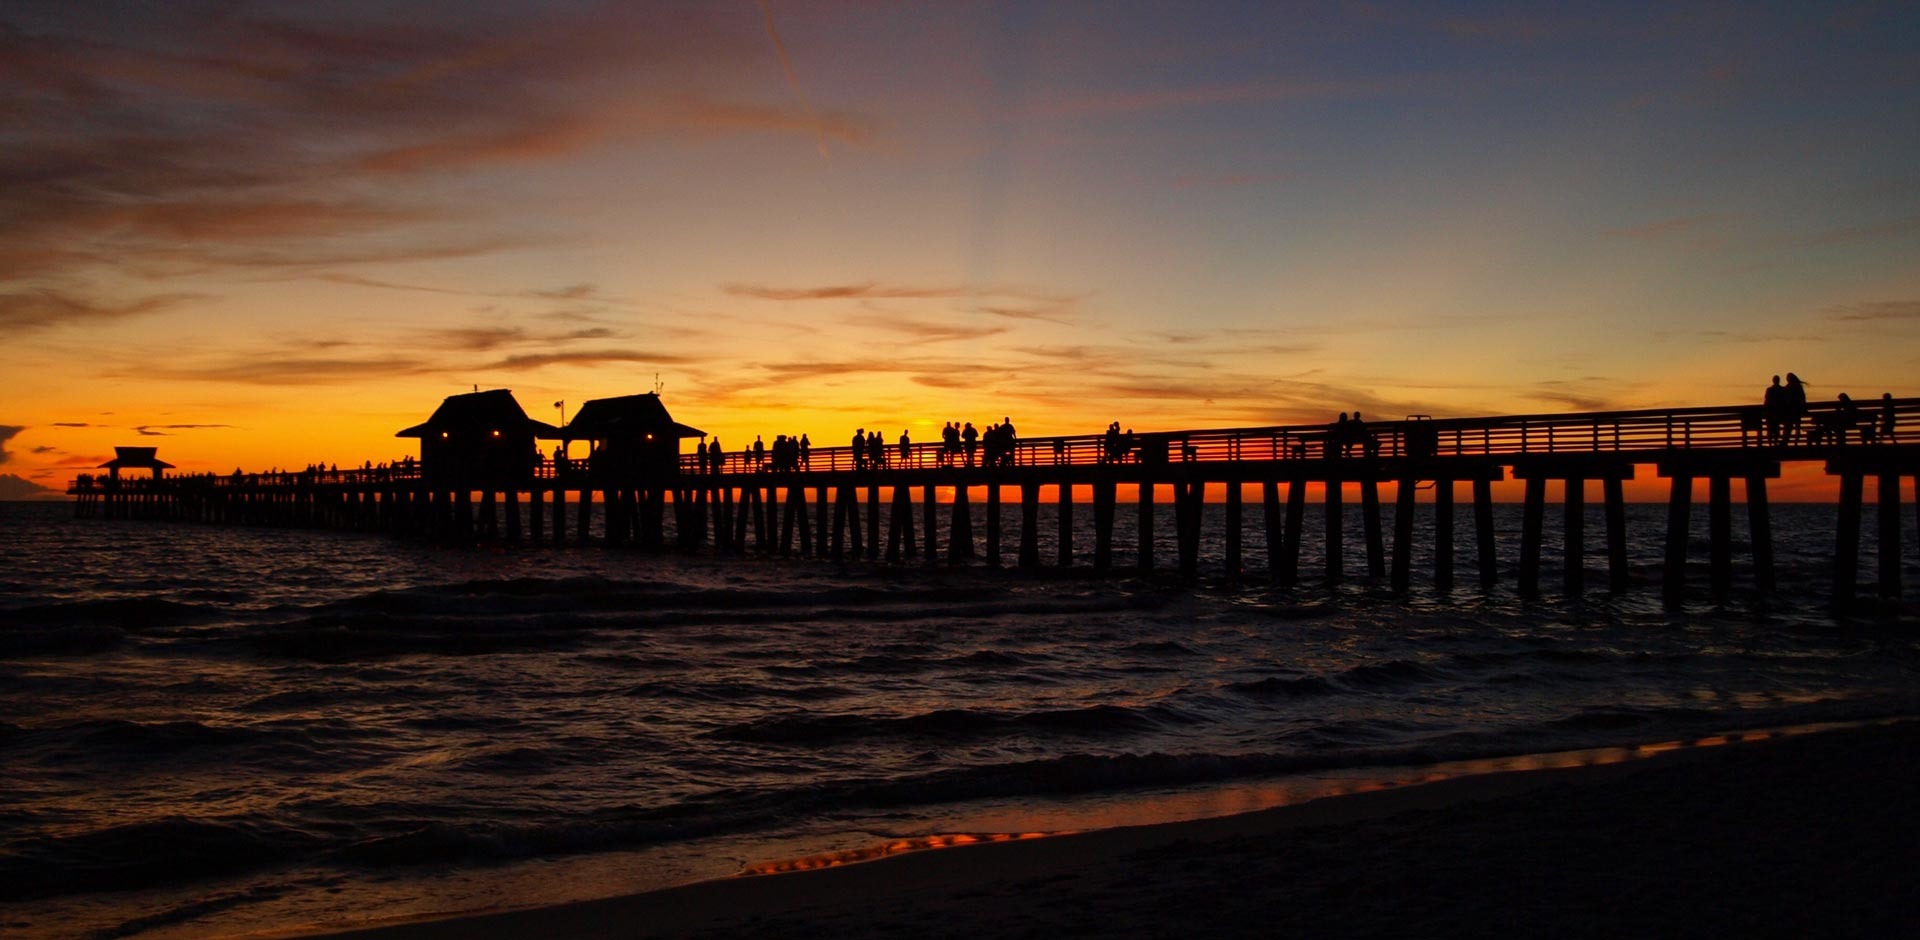 About Sunset Coast Construction Services, LLC | Florida State Certified Contractor in Naples, FL